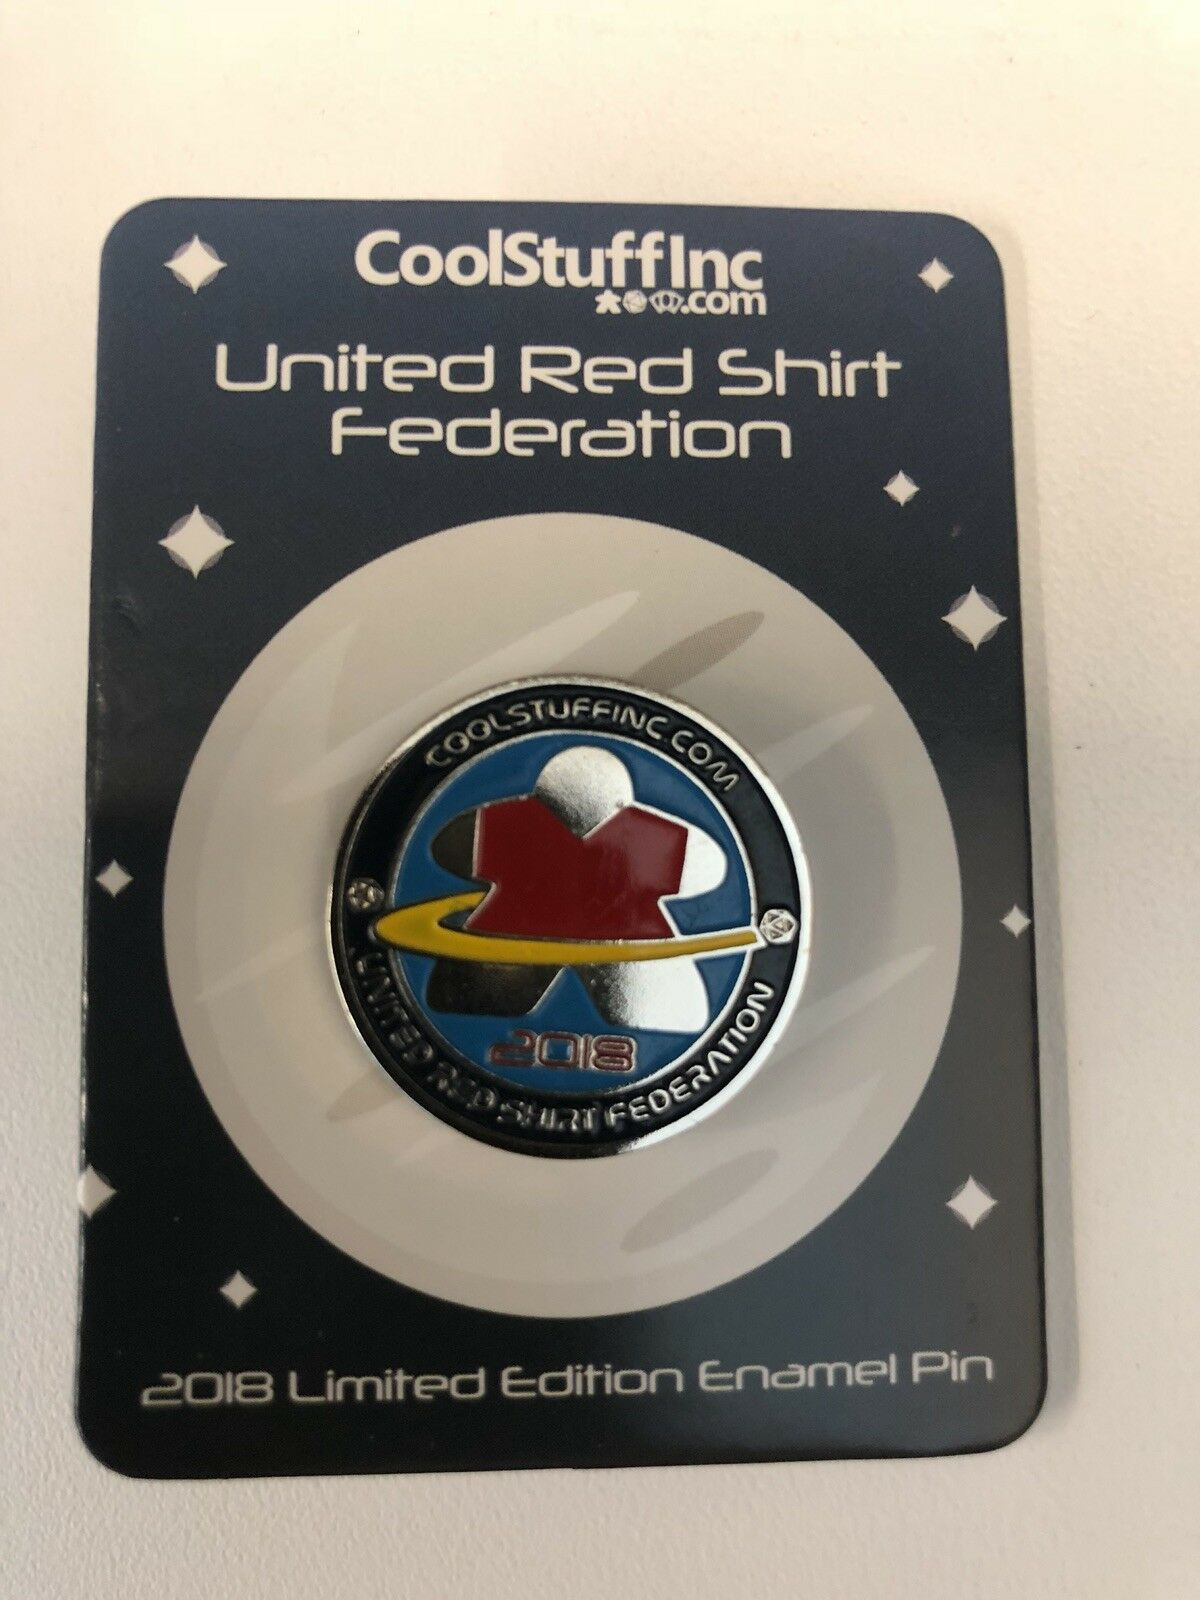 Gen Con 2018 United rouge Shirt Federation Pin Enamel Limited Cool Stuff Inc RARE